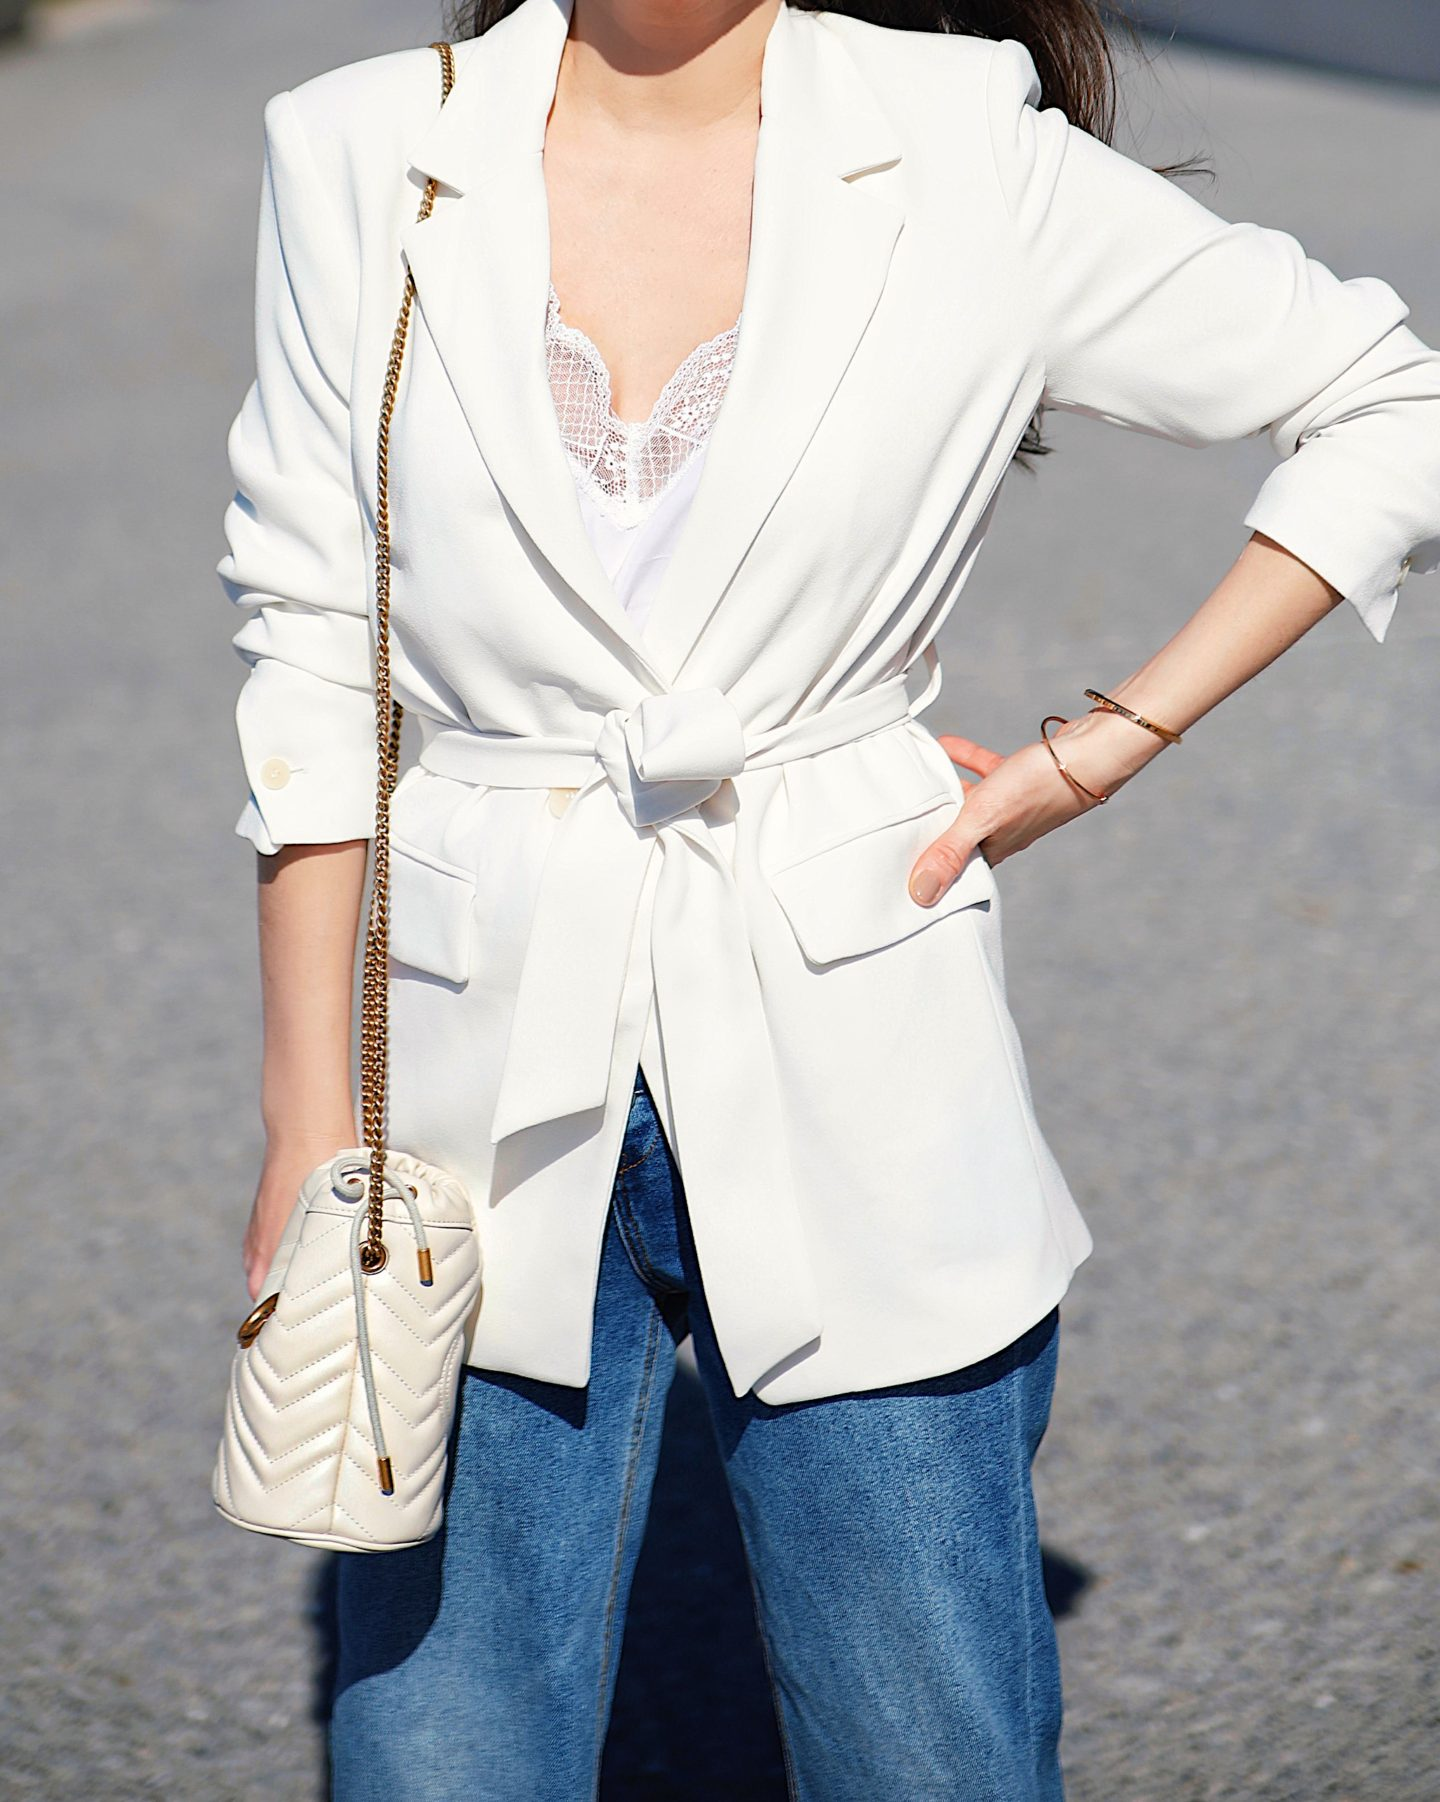 Ana Florencia wearing Mango white crepe blazer in NYC